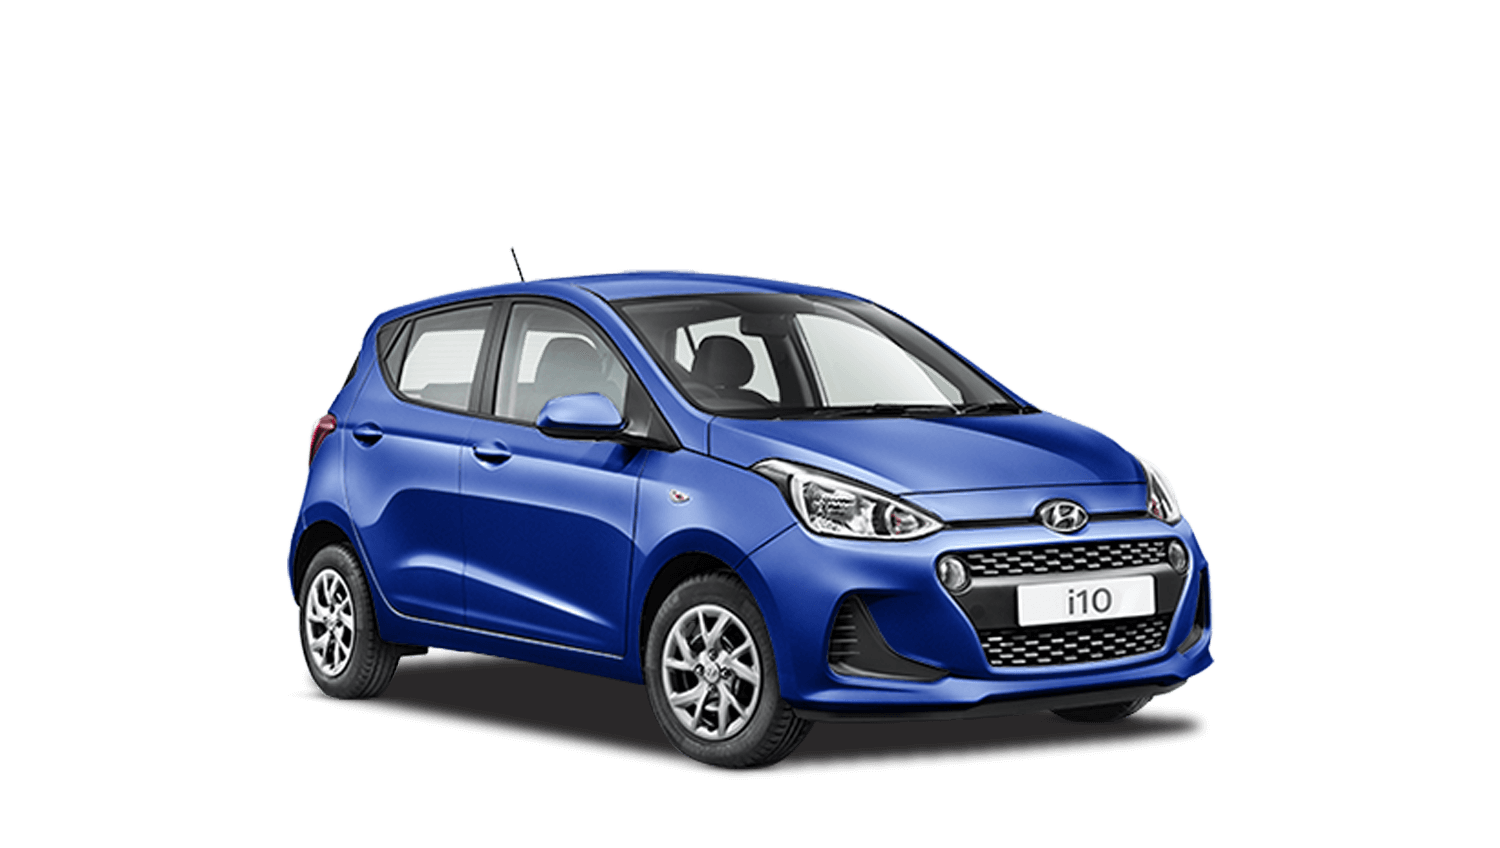 Champion Blue Hyundai i10